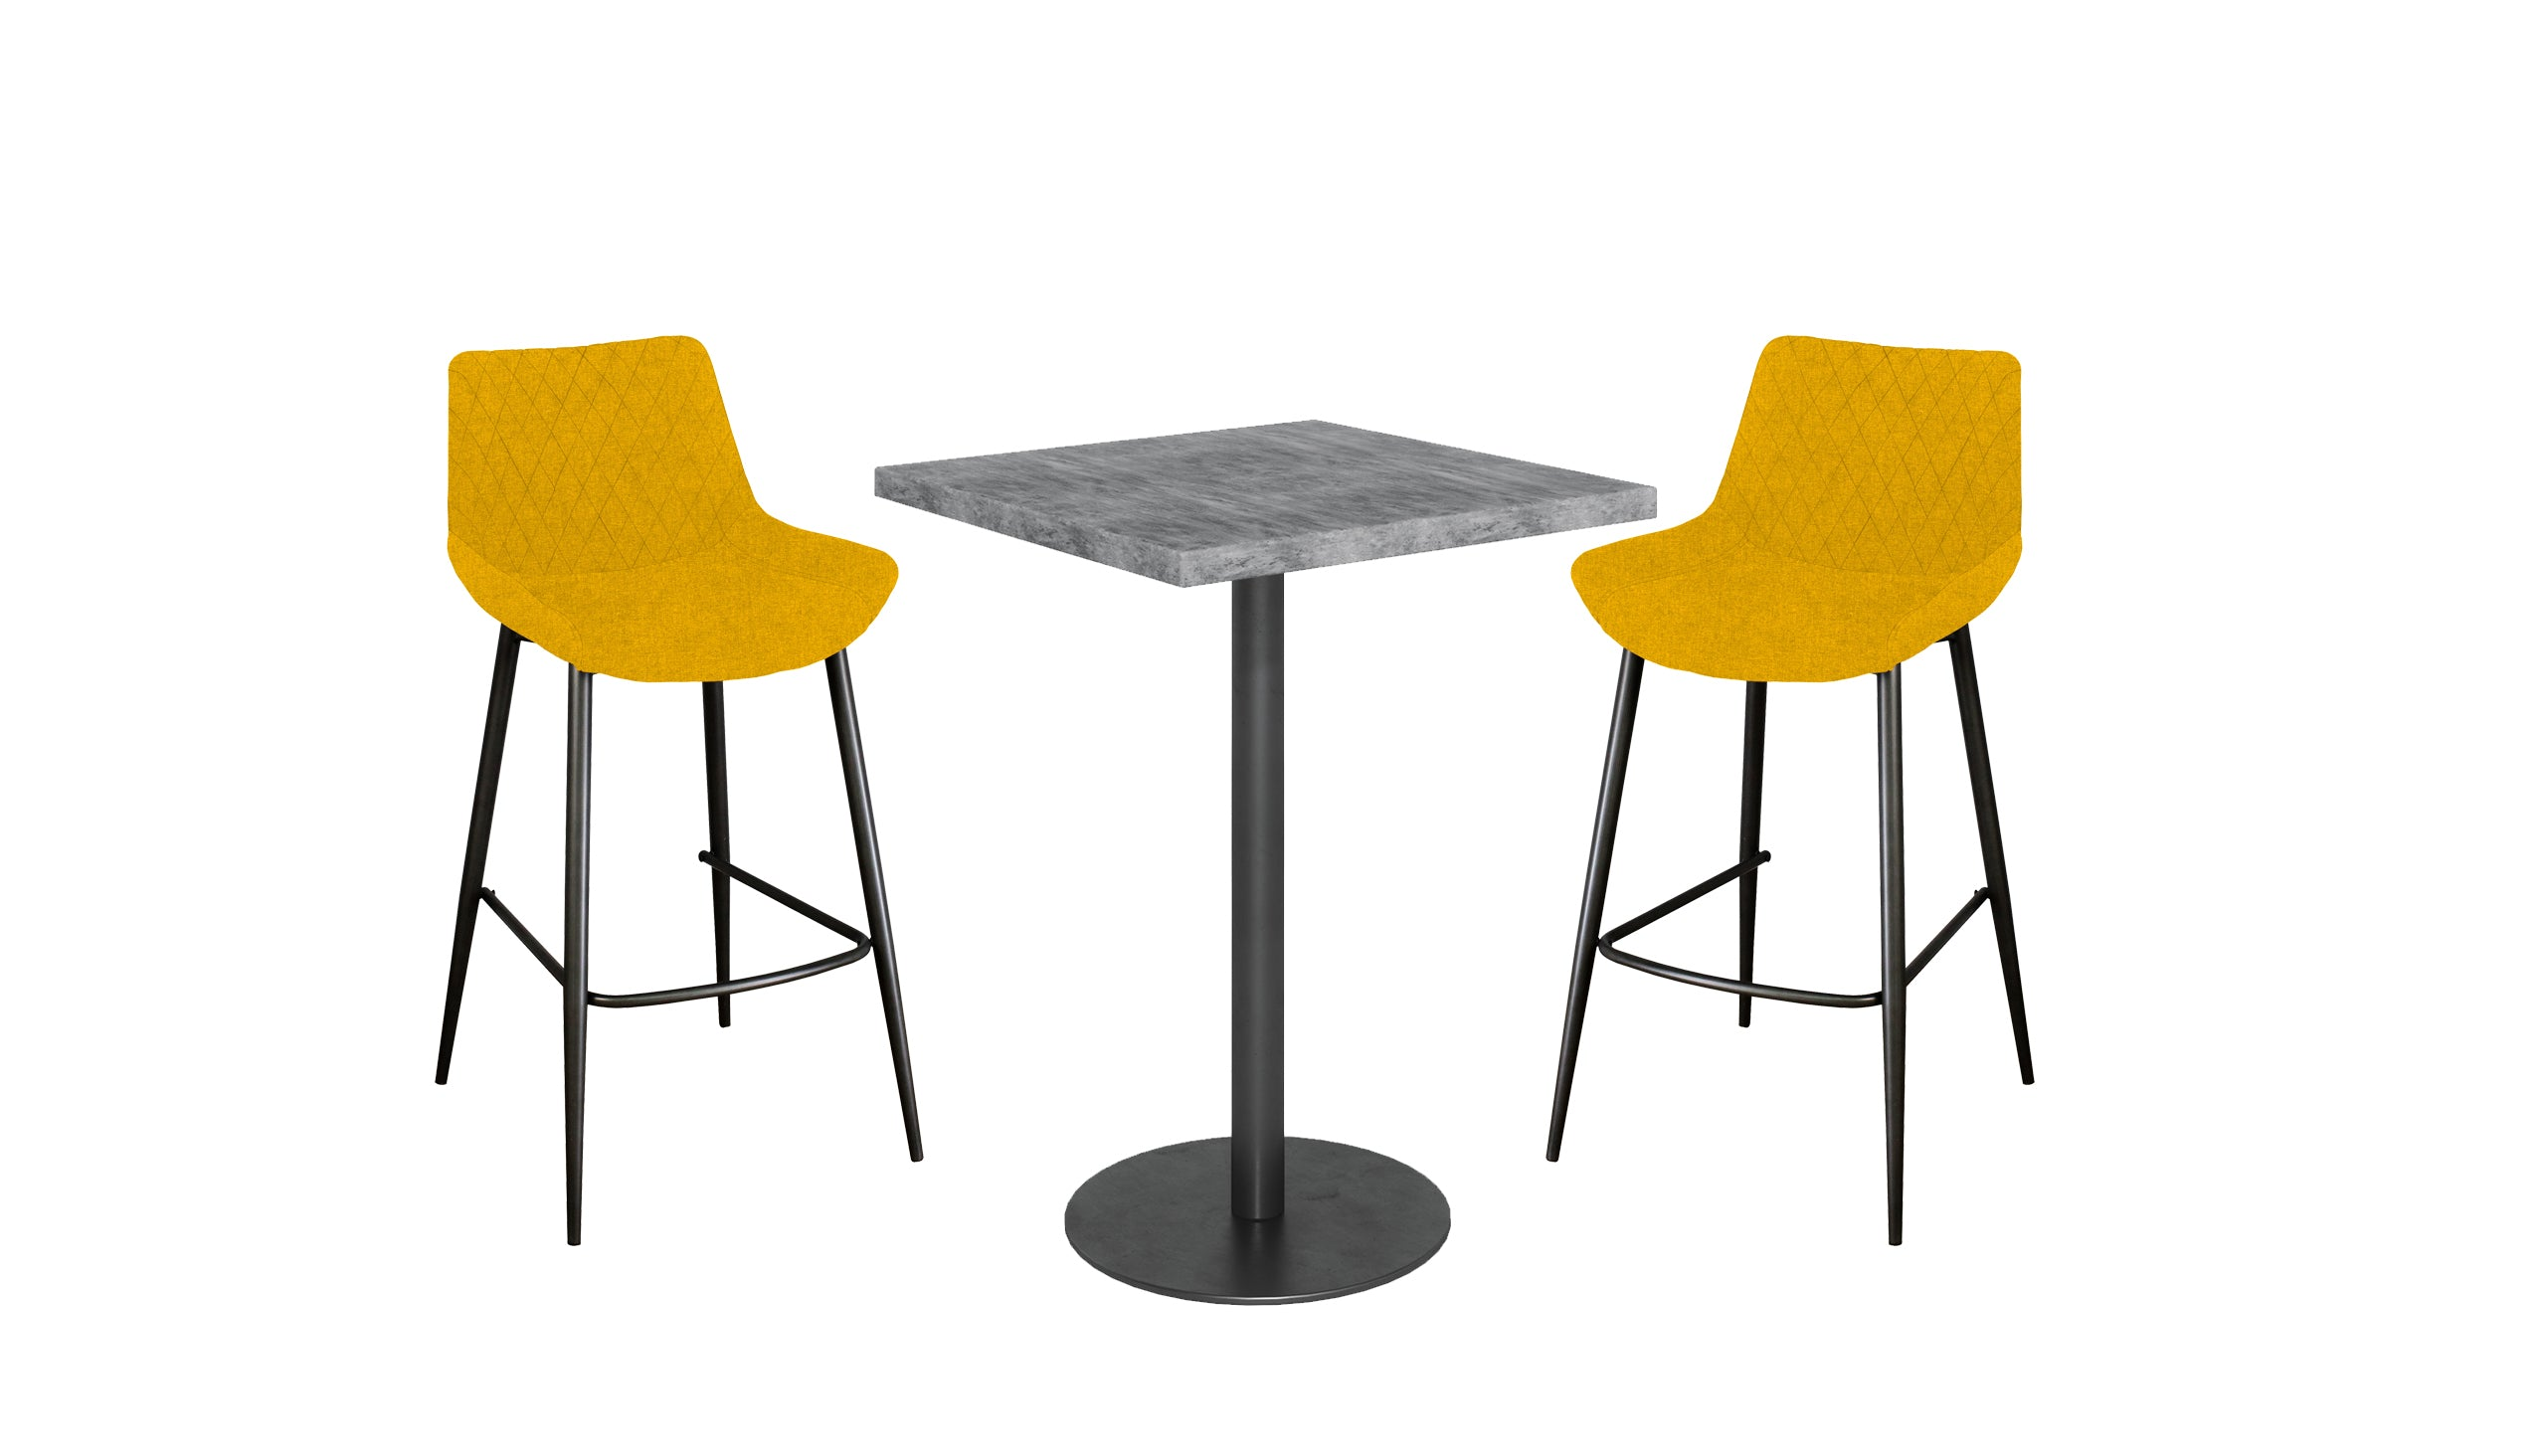 Brooklyn Concrete Bar Table and Bar Stools